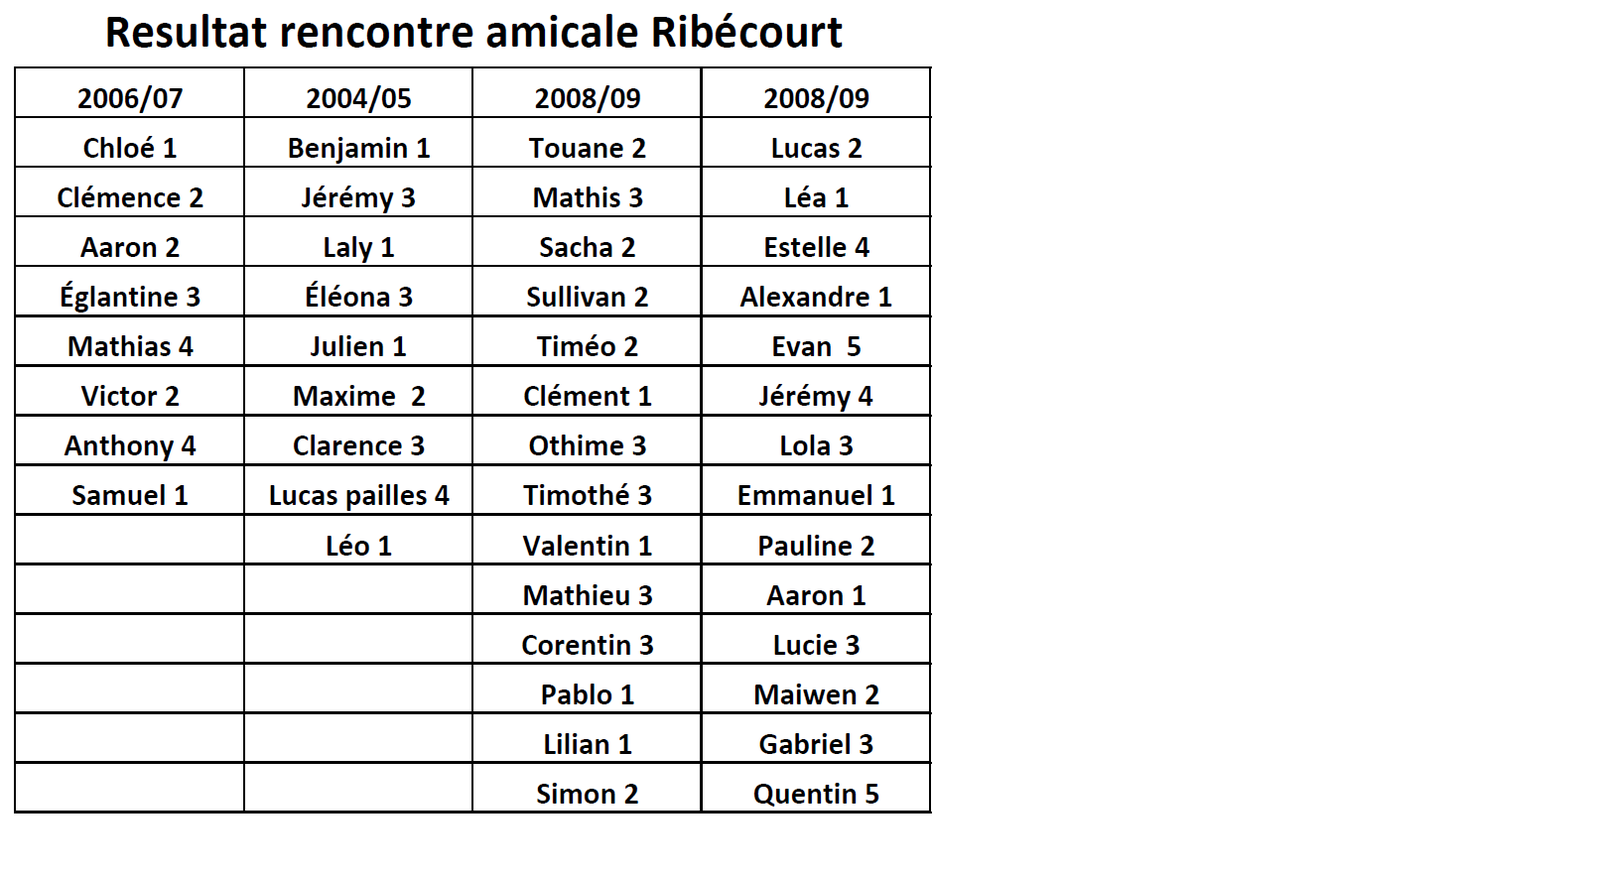 As 36 rencontre